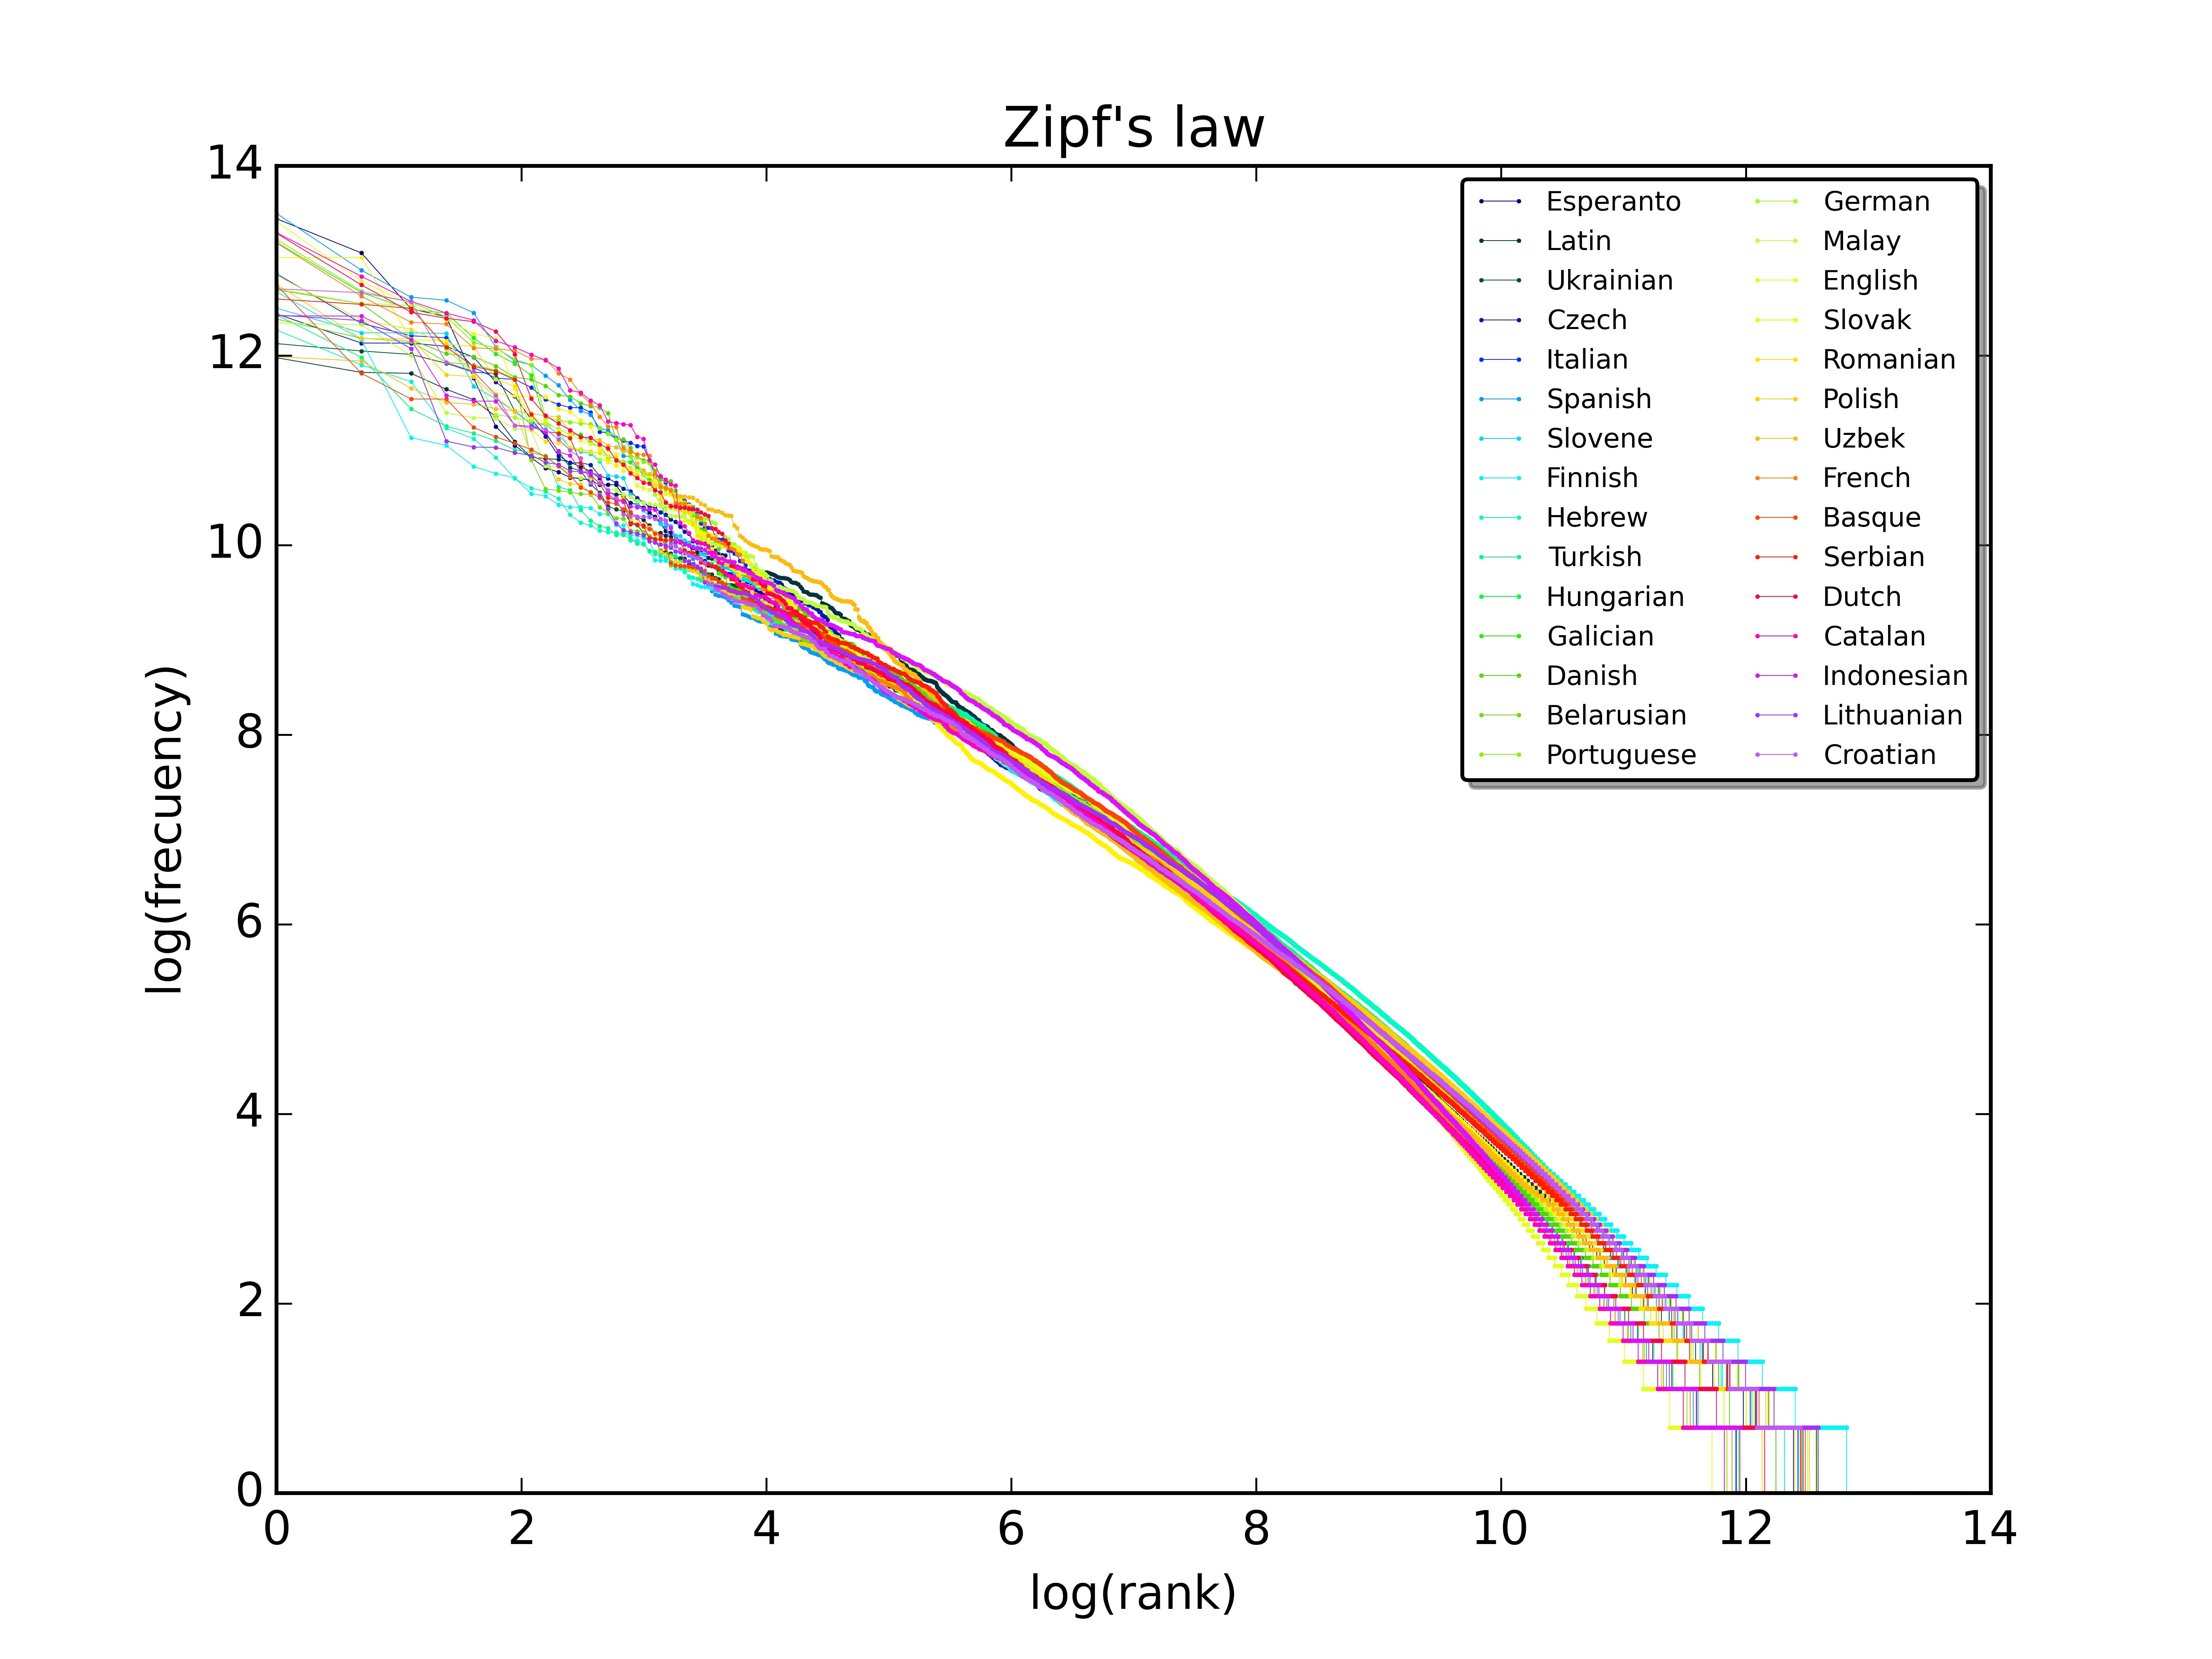 A Plot Of The Rank Versus Frequency For The First 10 Million Words In 30  Wikipedias (dumps From October 2015) In A Loglog Scale